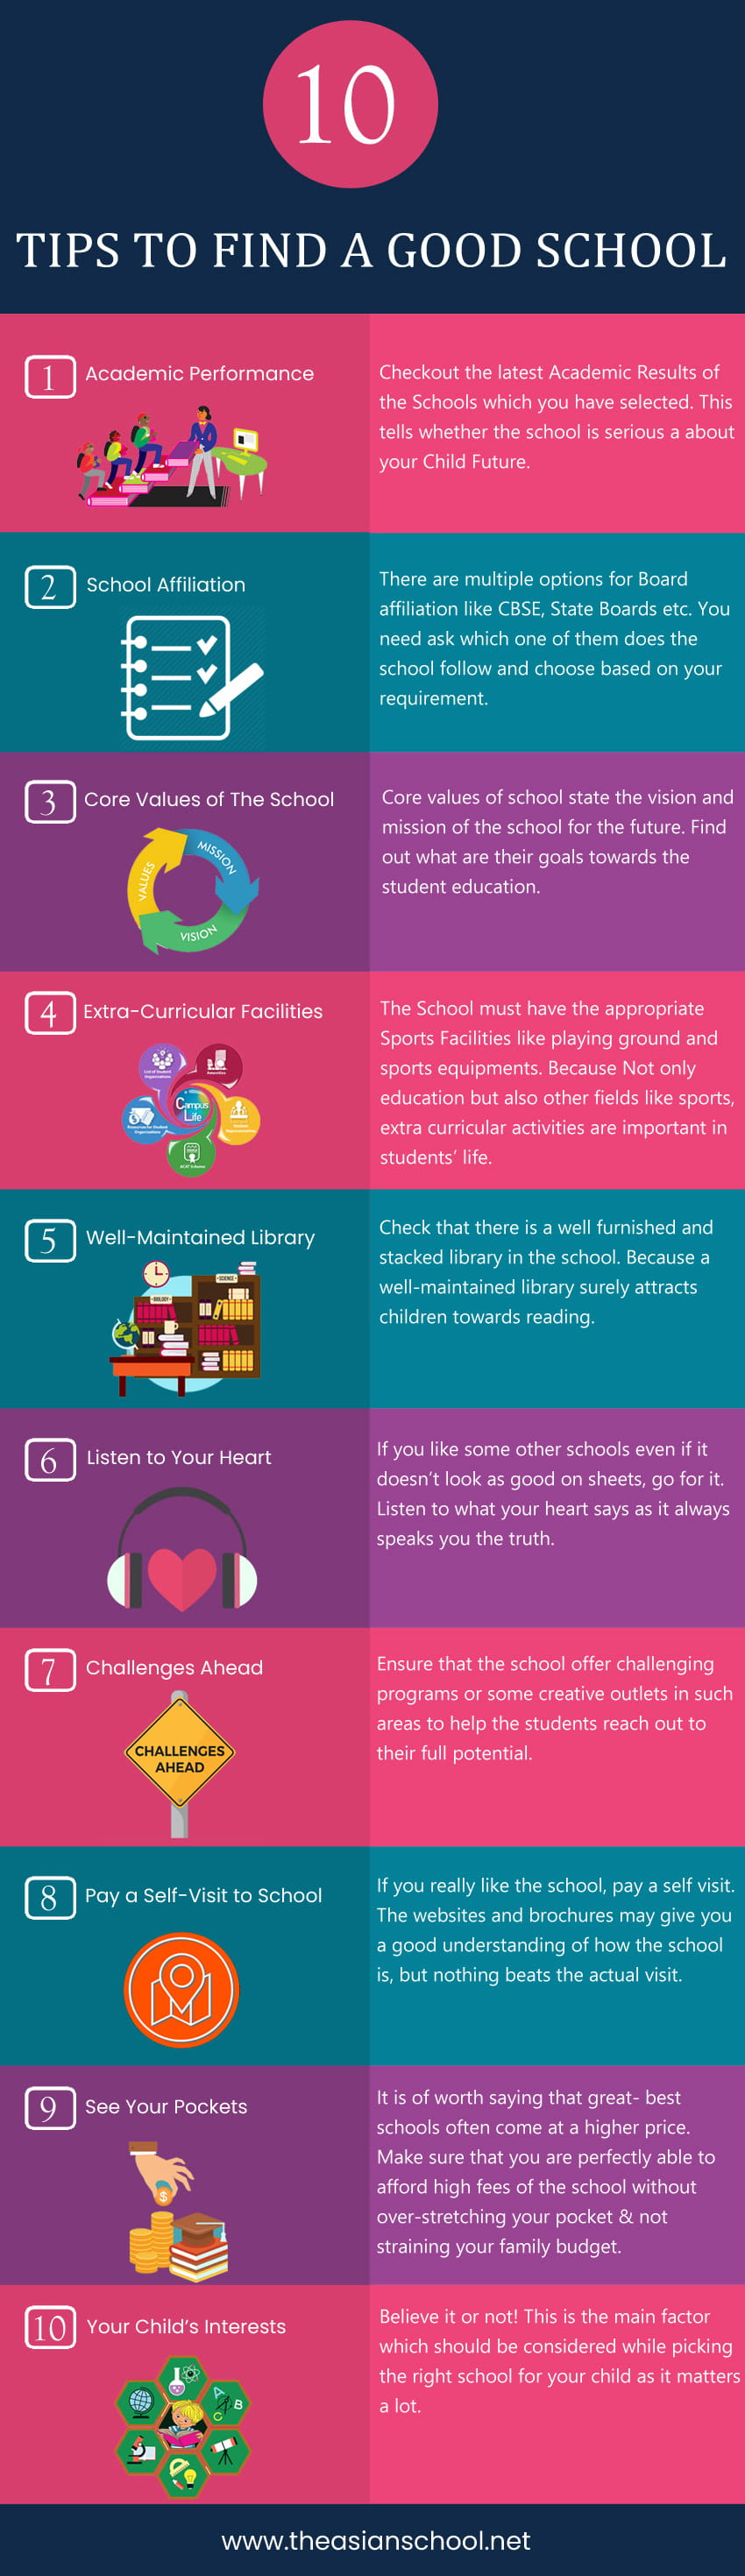 tips-to-find-a-good-school